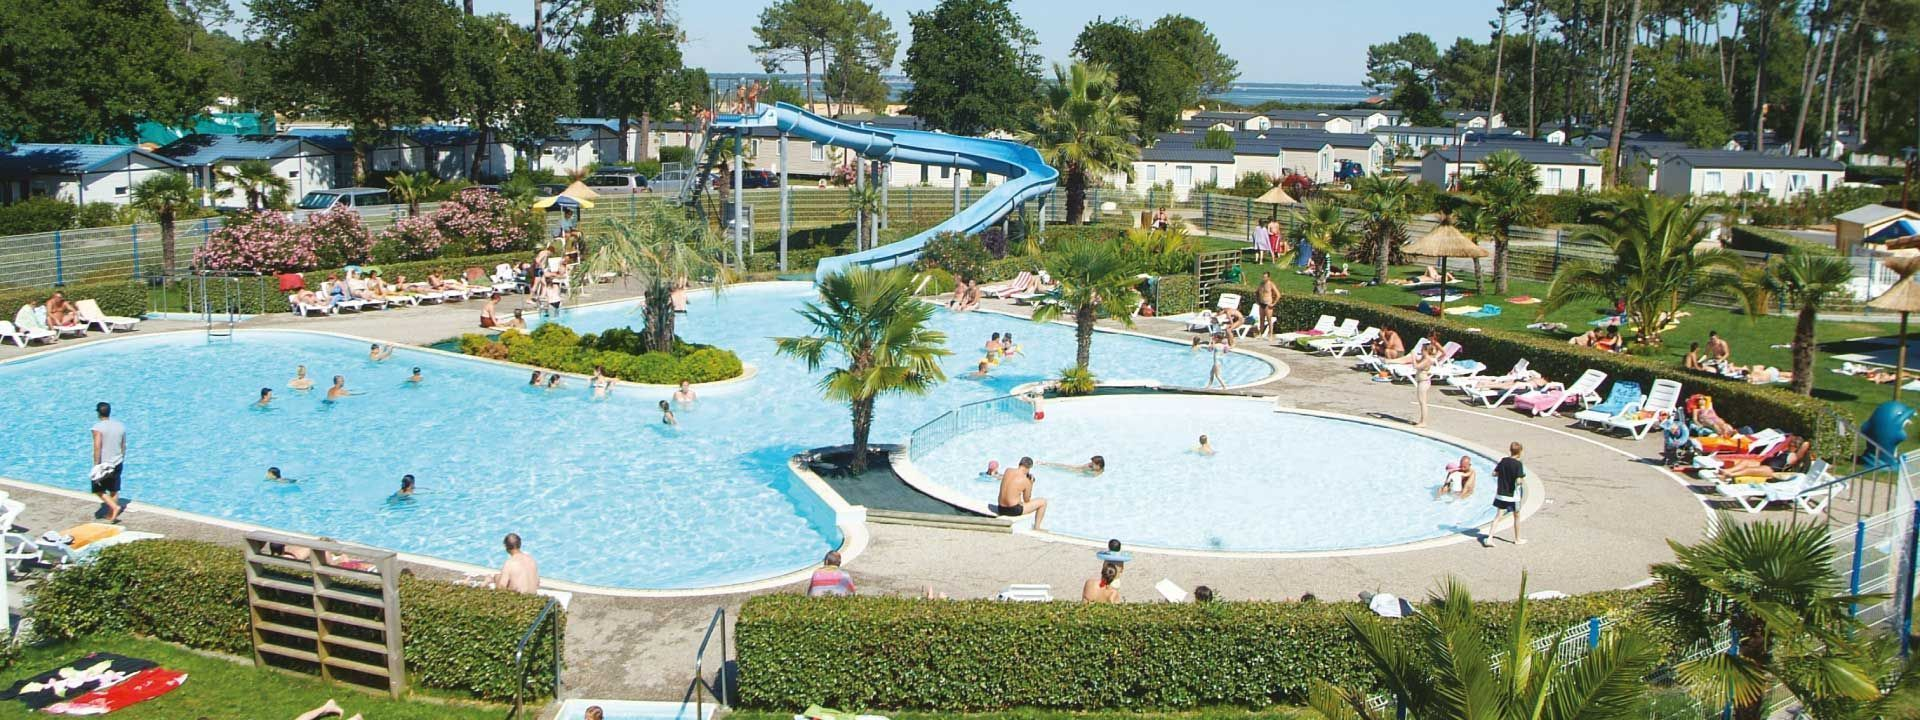 Camping Les Viviers (Gironde)